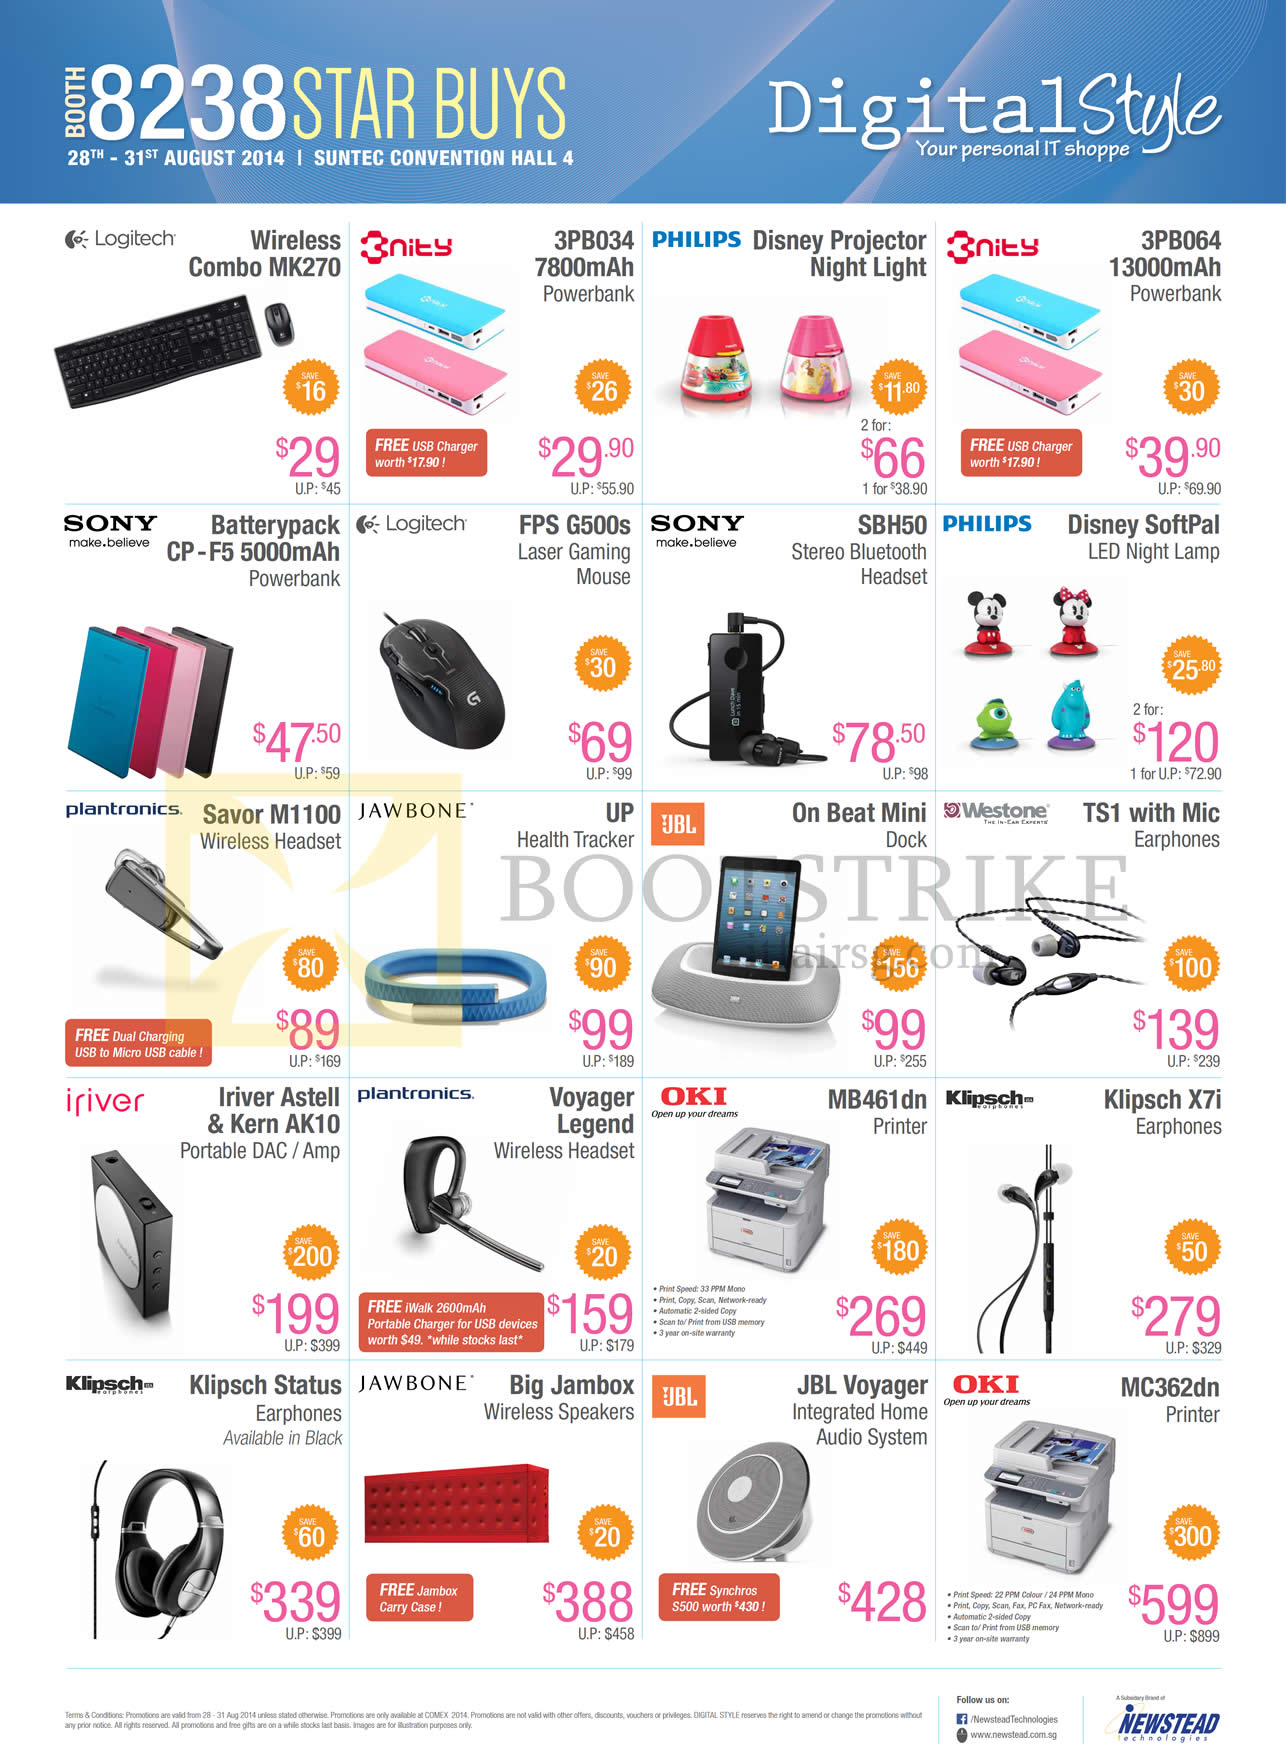 COMEX 2014 price list image brochure of Newstead Digital Style Accessories Power Banks, Wireless Headsets, Earphones, Mouse, Fitness Trackers, Speakers, Printer, LED Night Lamp